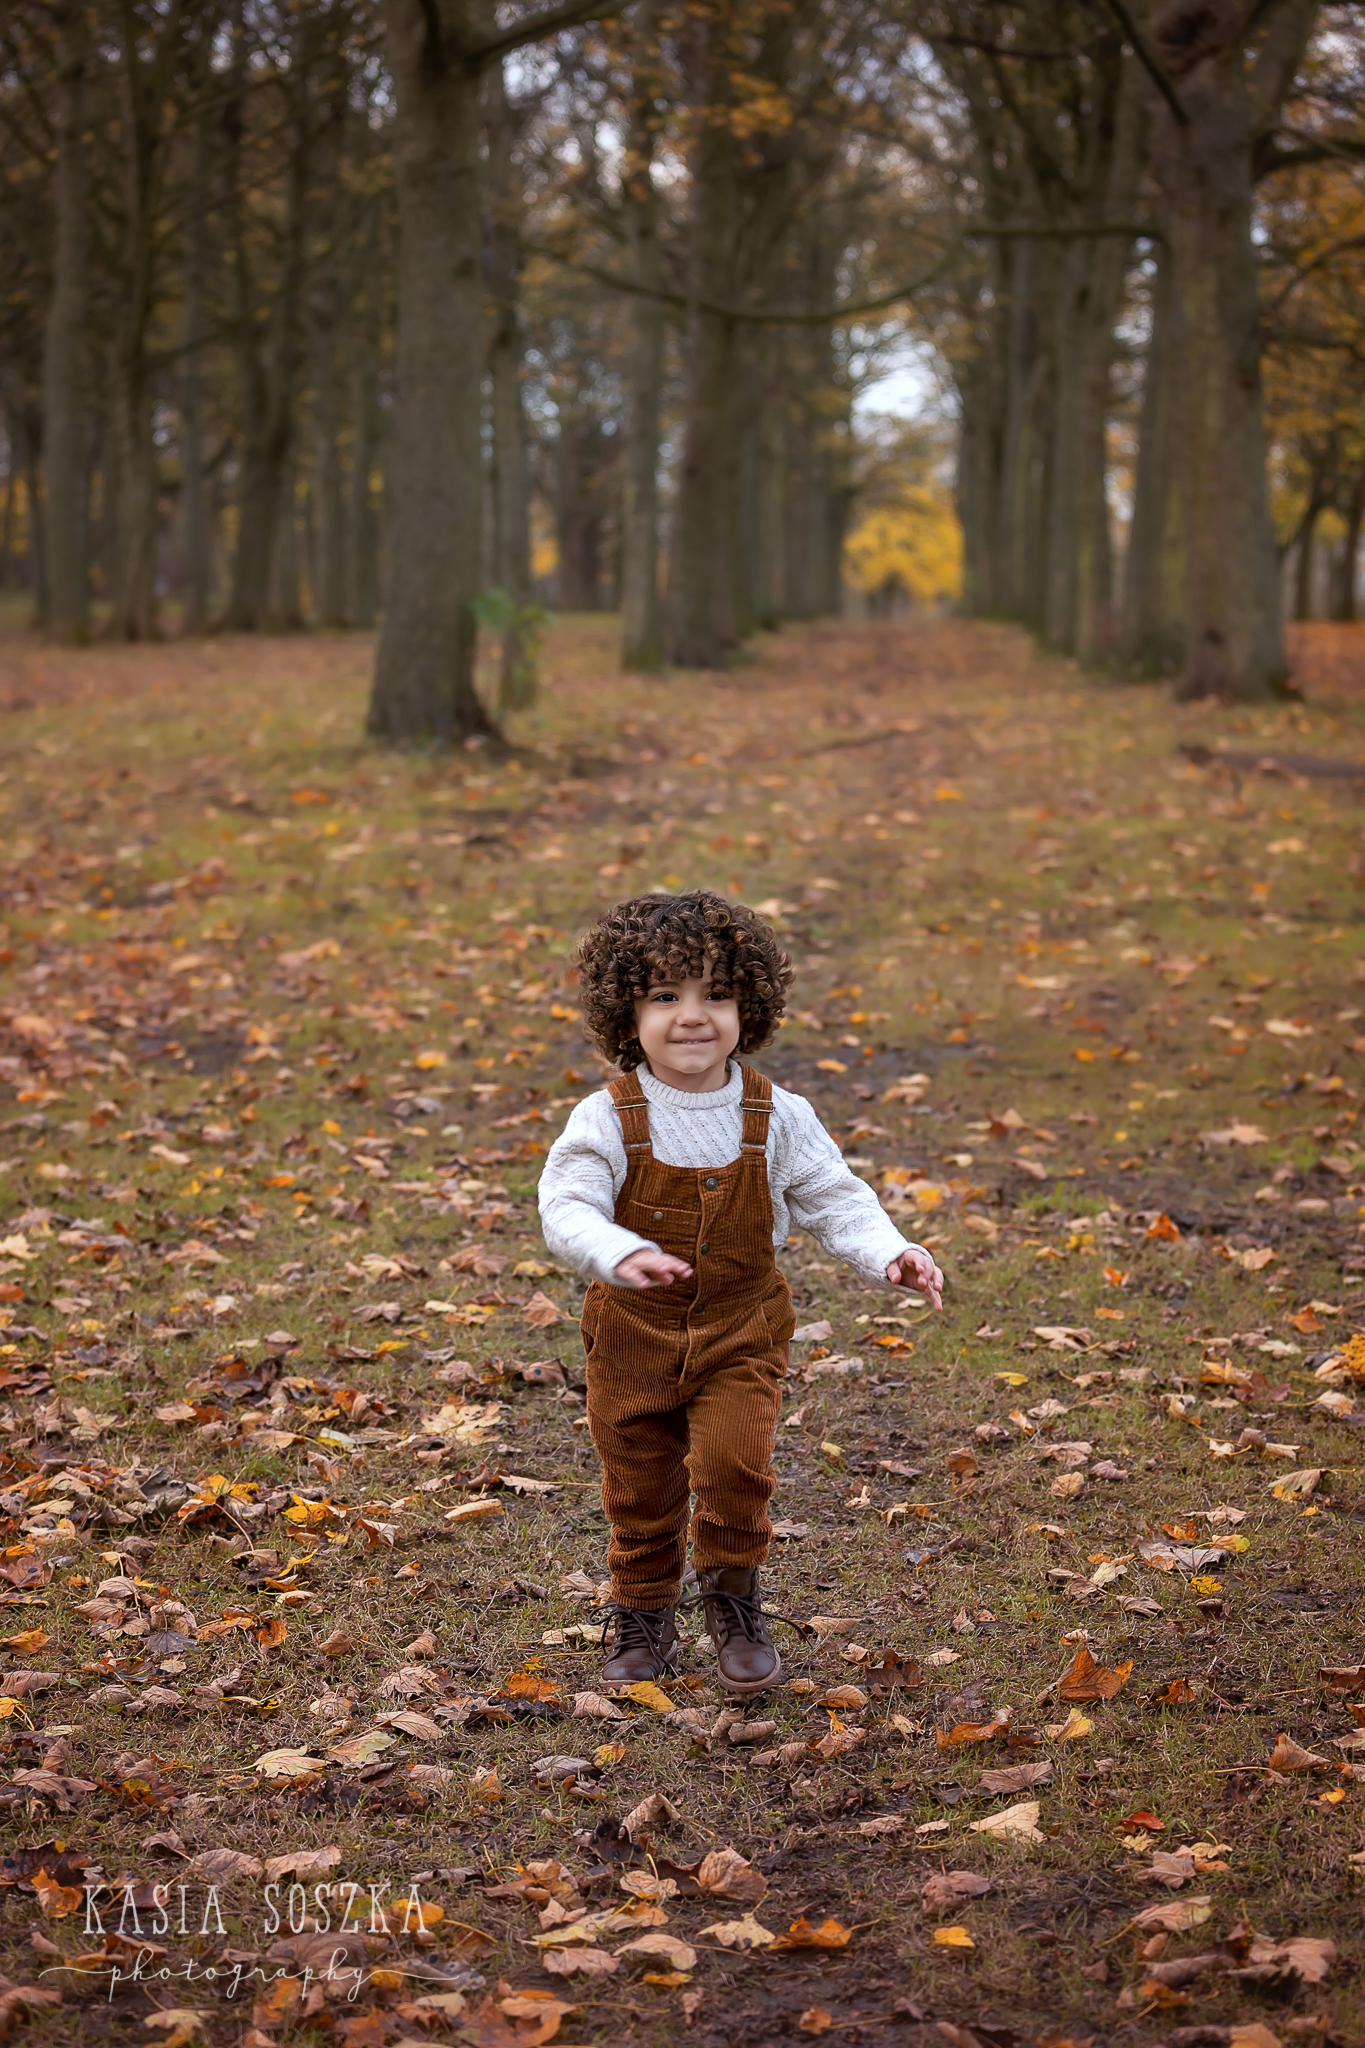 Yorkshire child photography: cute little boy in white sweater and brown dungarees running through a park covered in Autumn leaves.